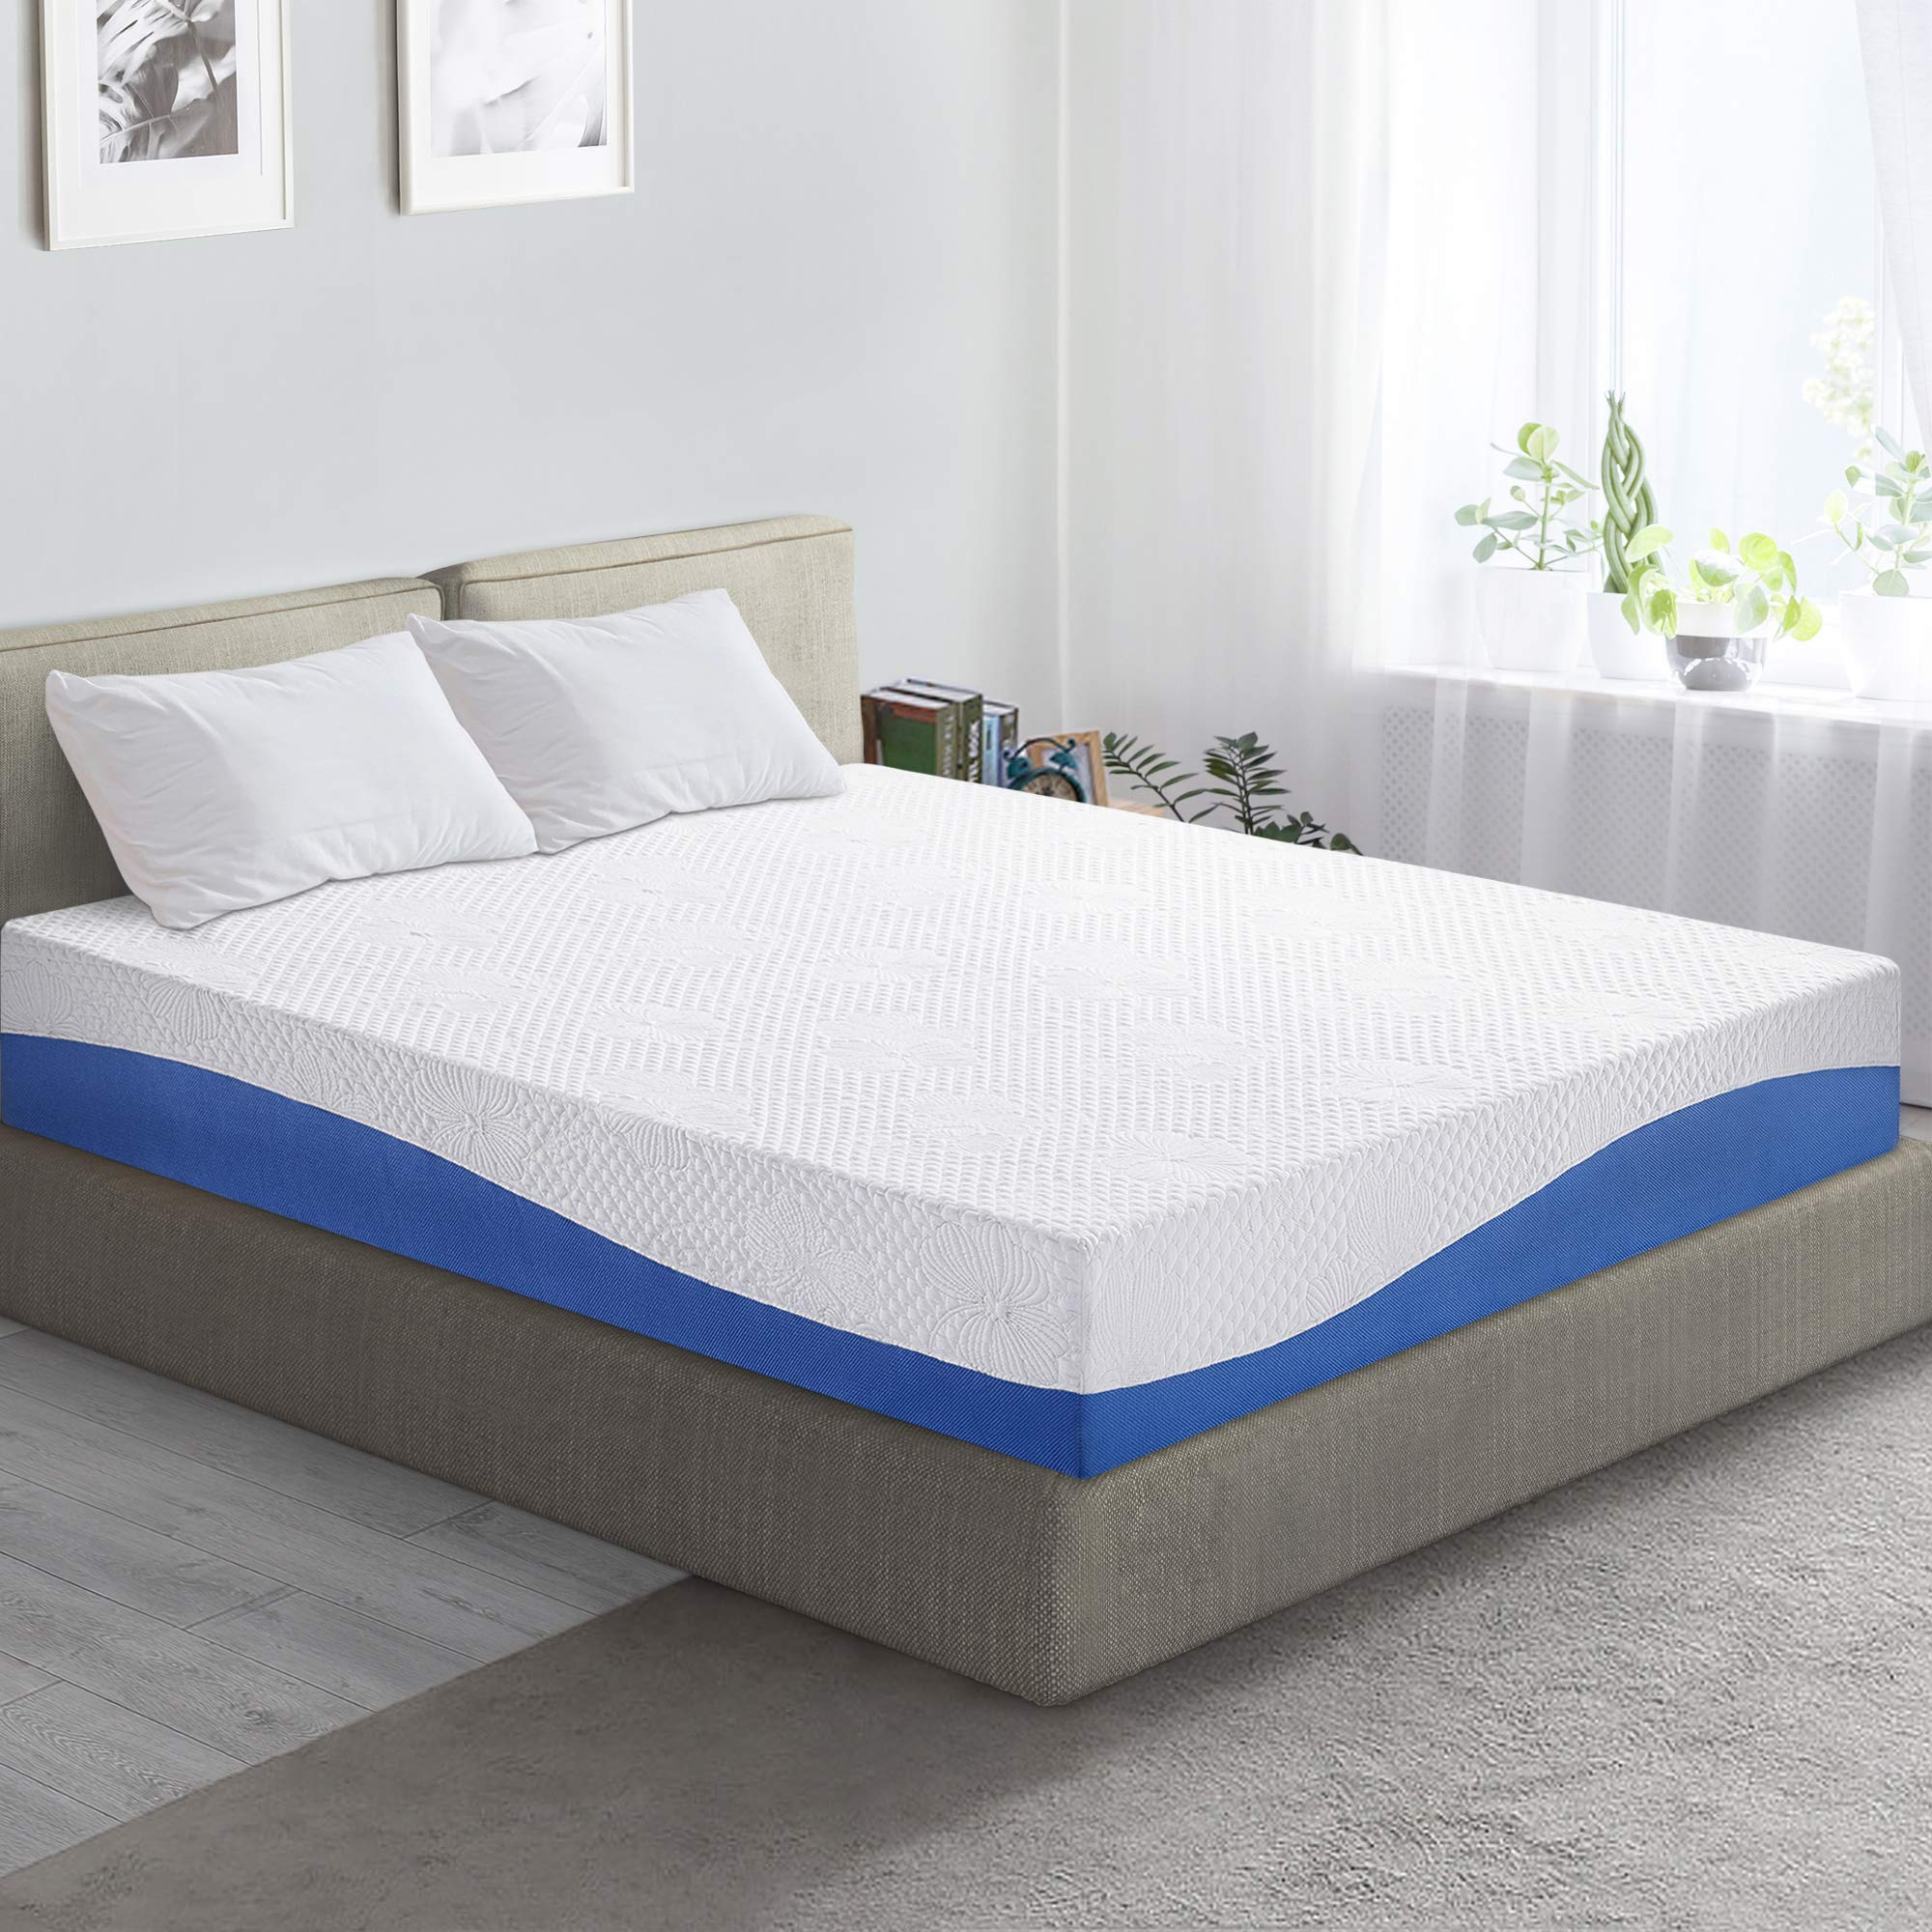 PrimaSleep Wave Gel Infused Memory Foam Mattress, 10'' H, Full, Blue by PrimaSleep